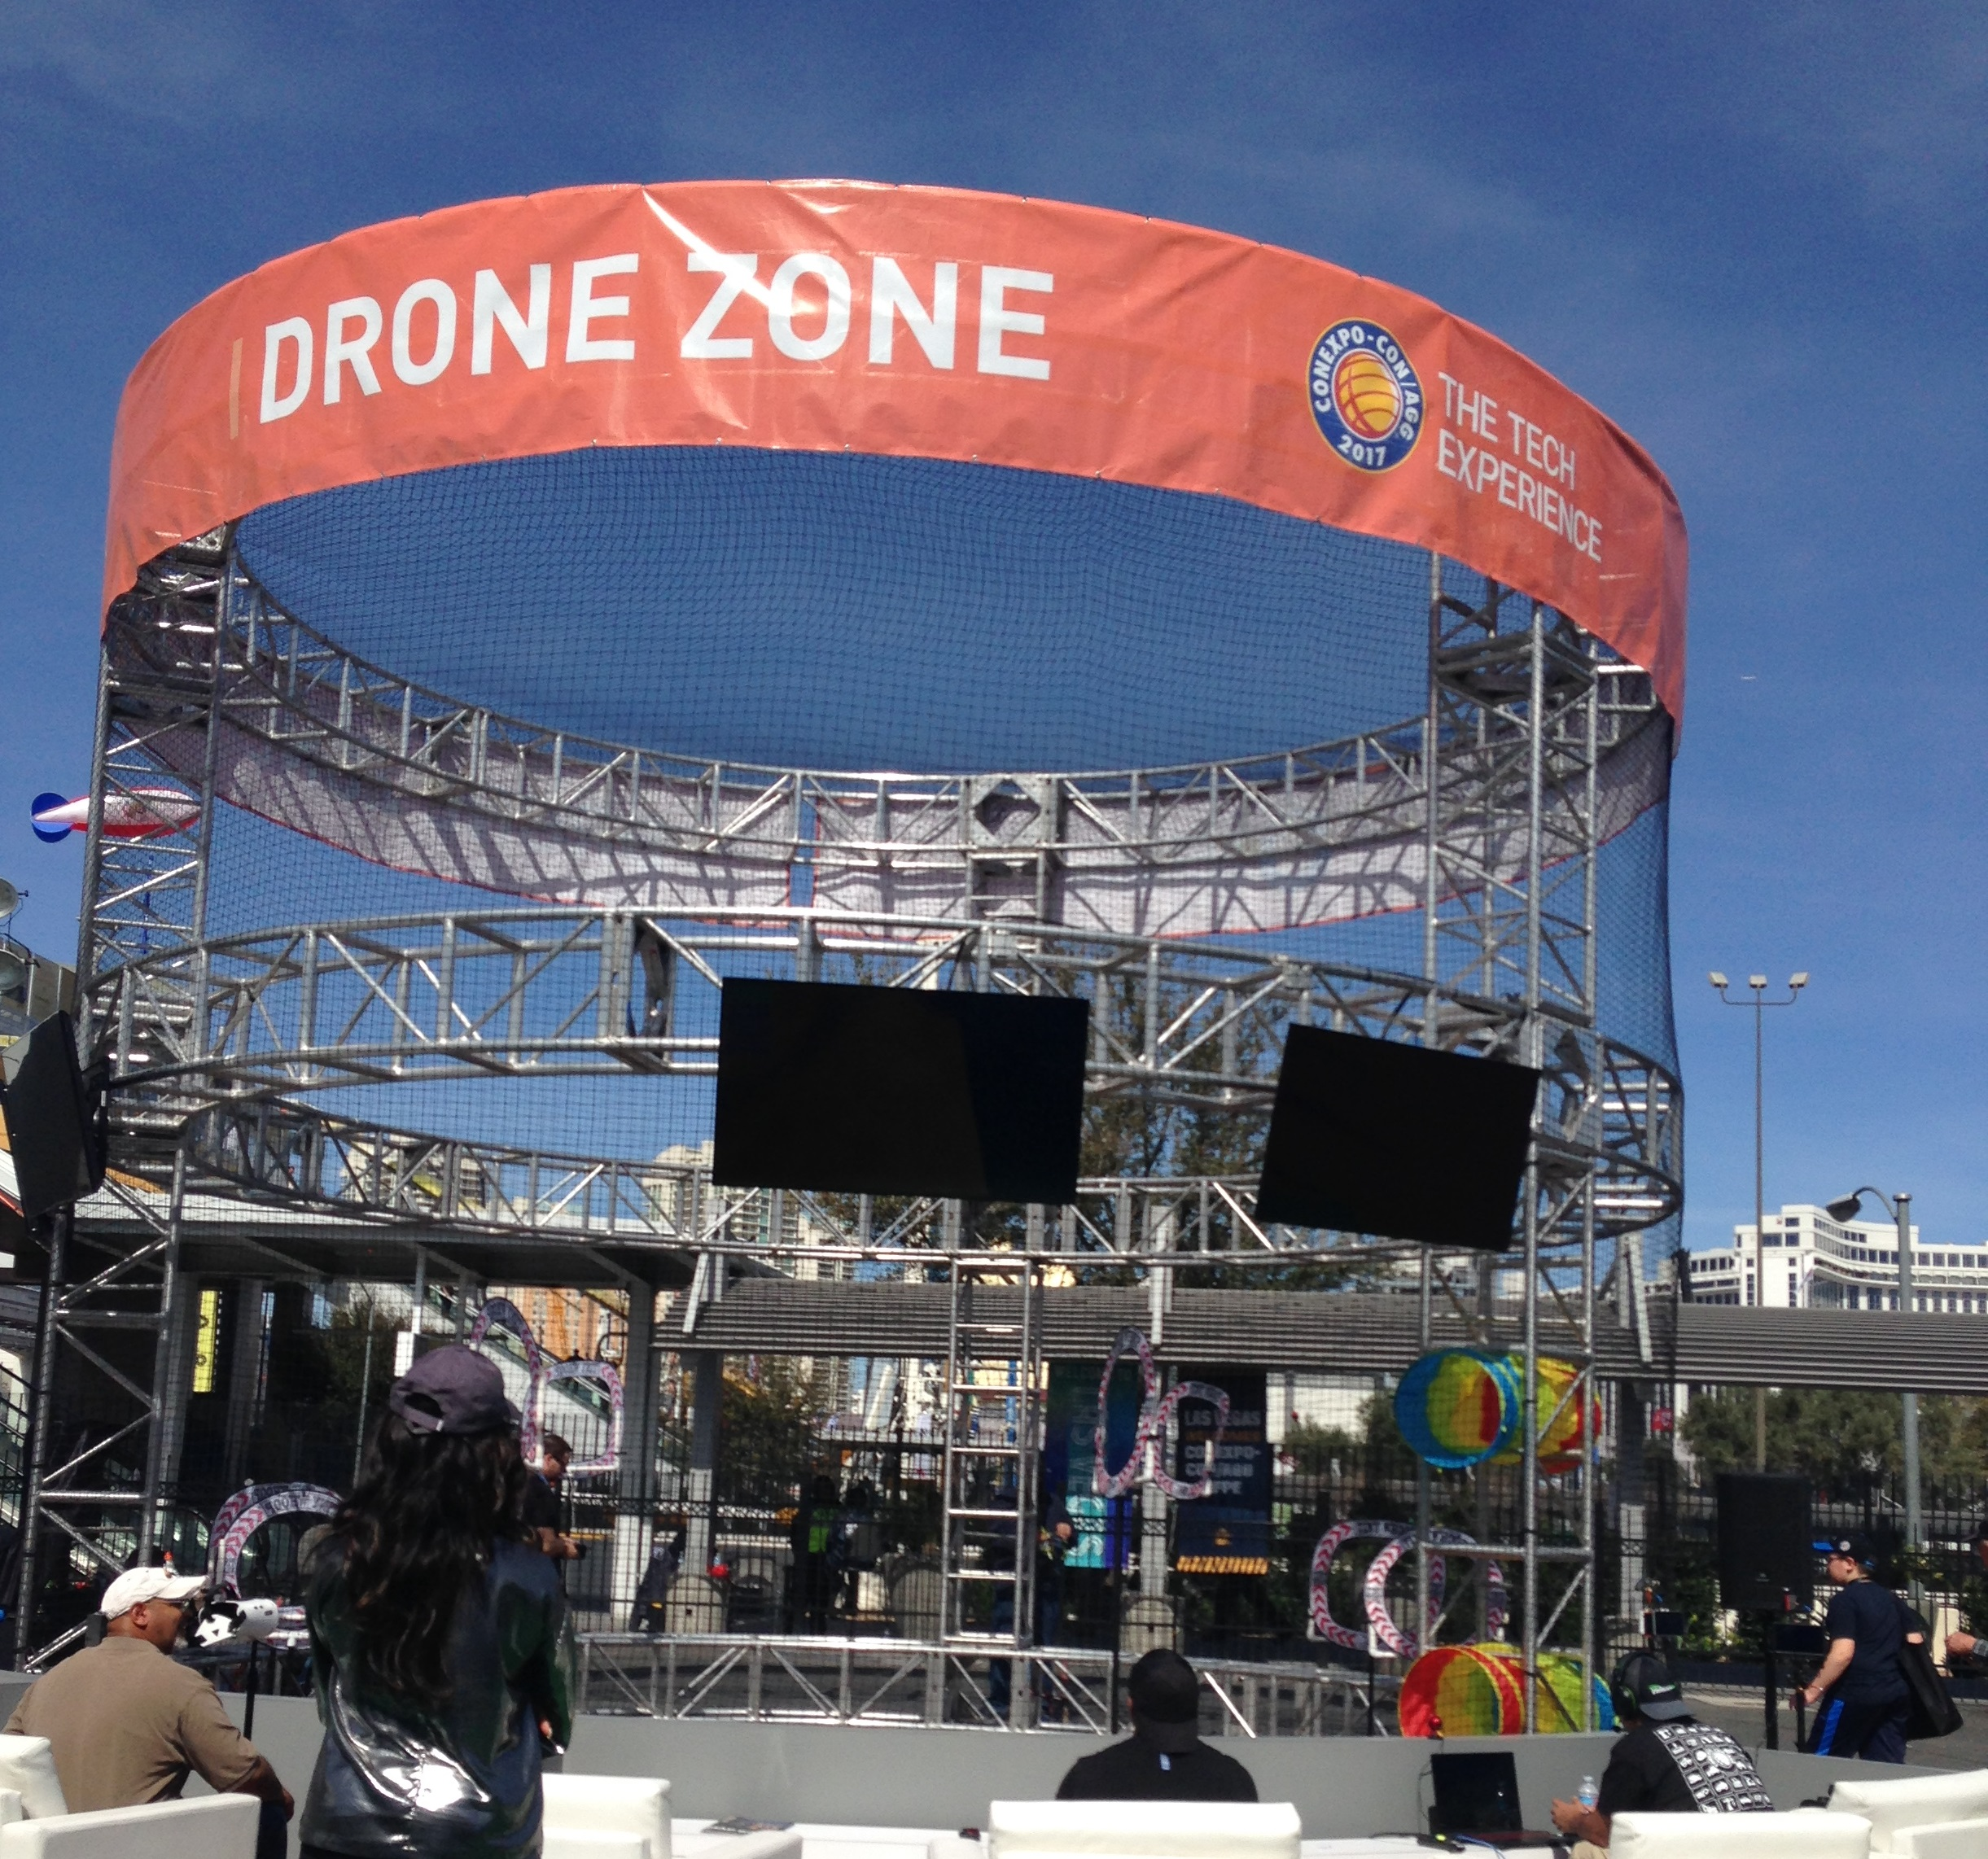 Drone zone at ConExpo photo